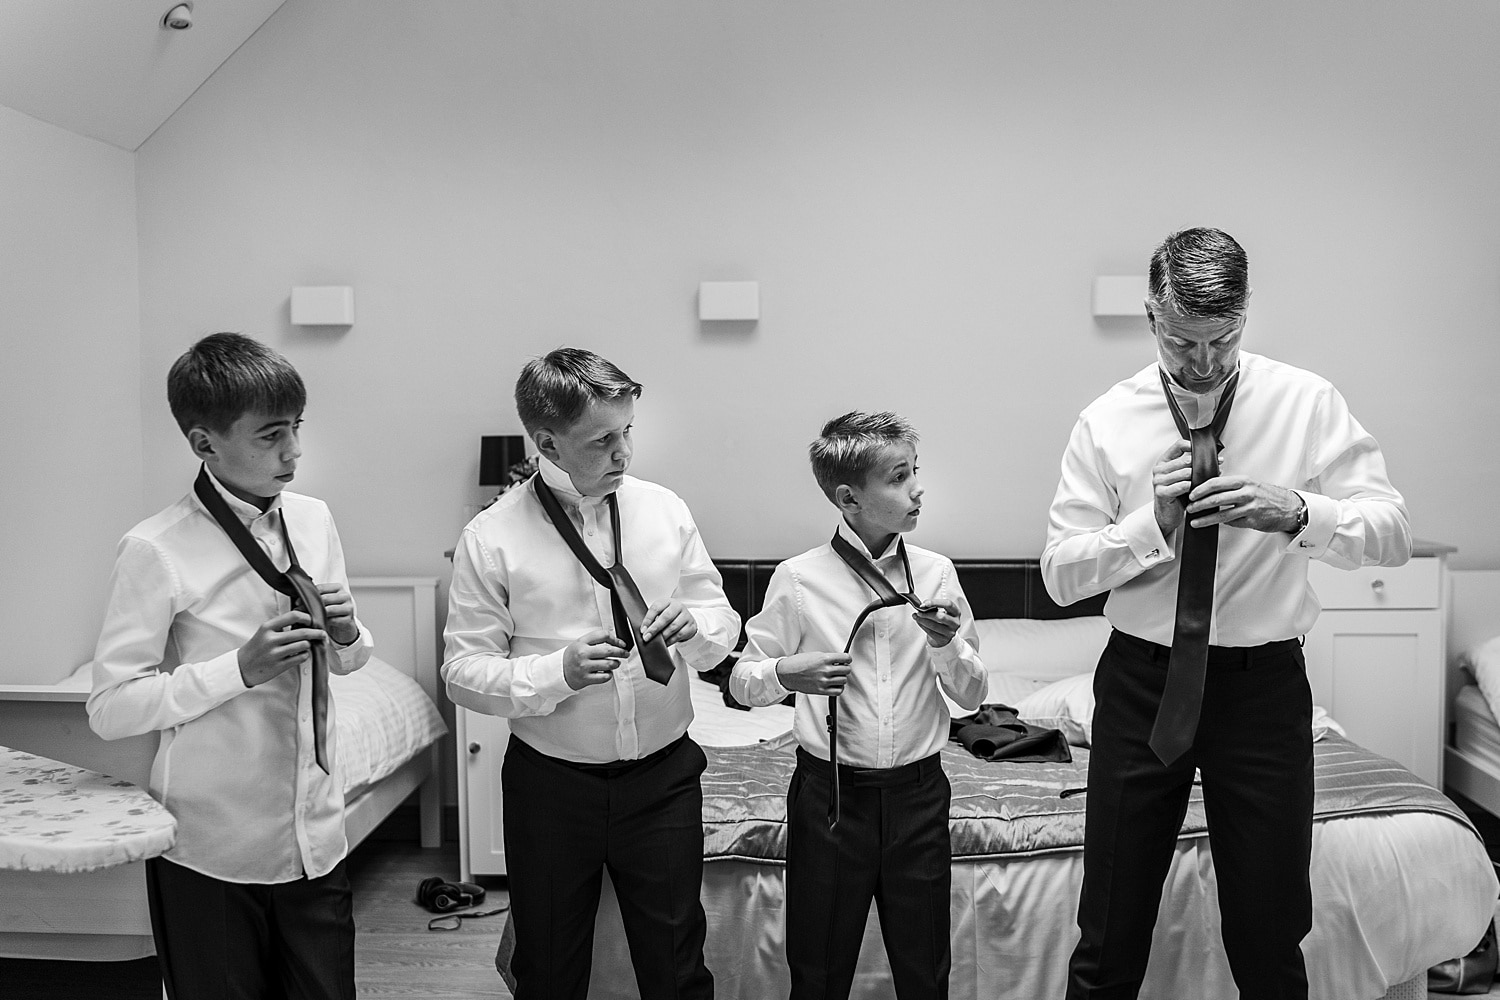 Page boys putting on ties